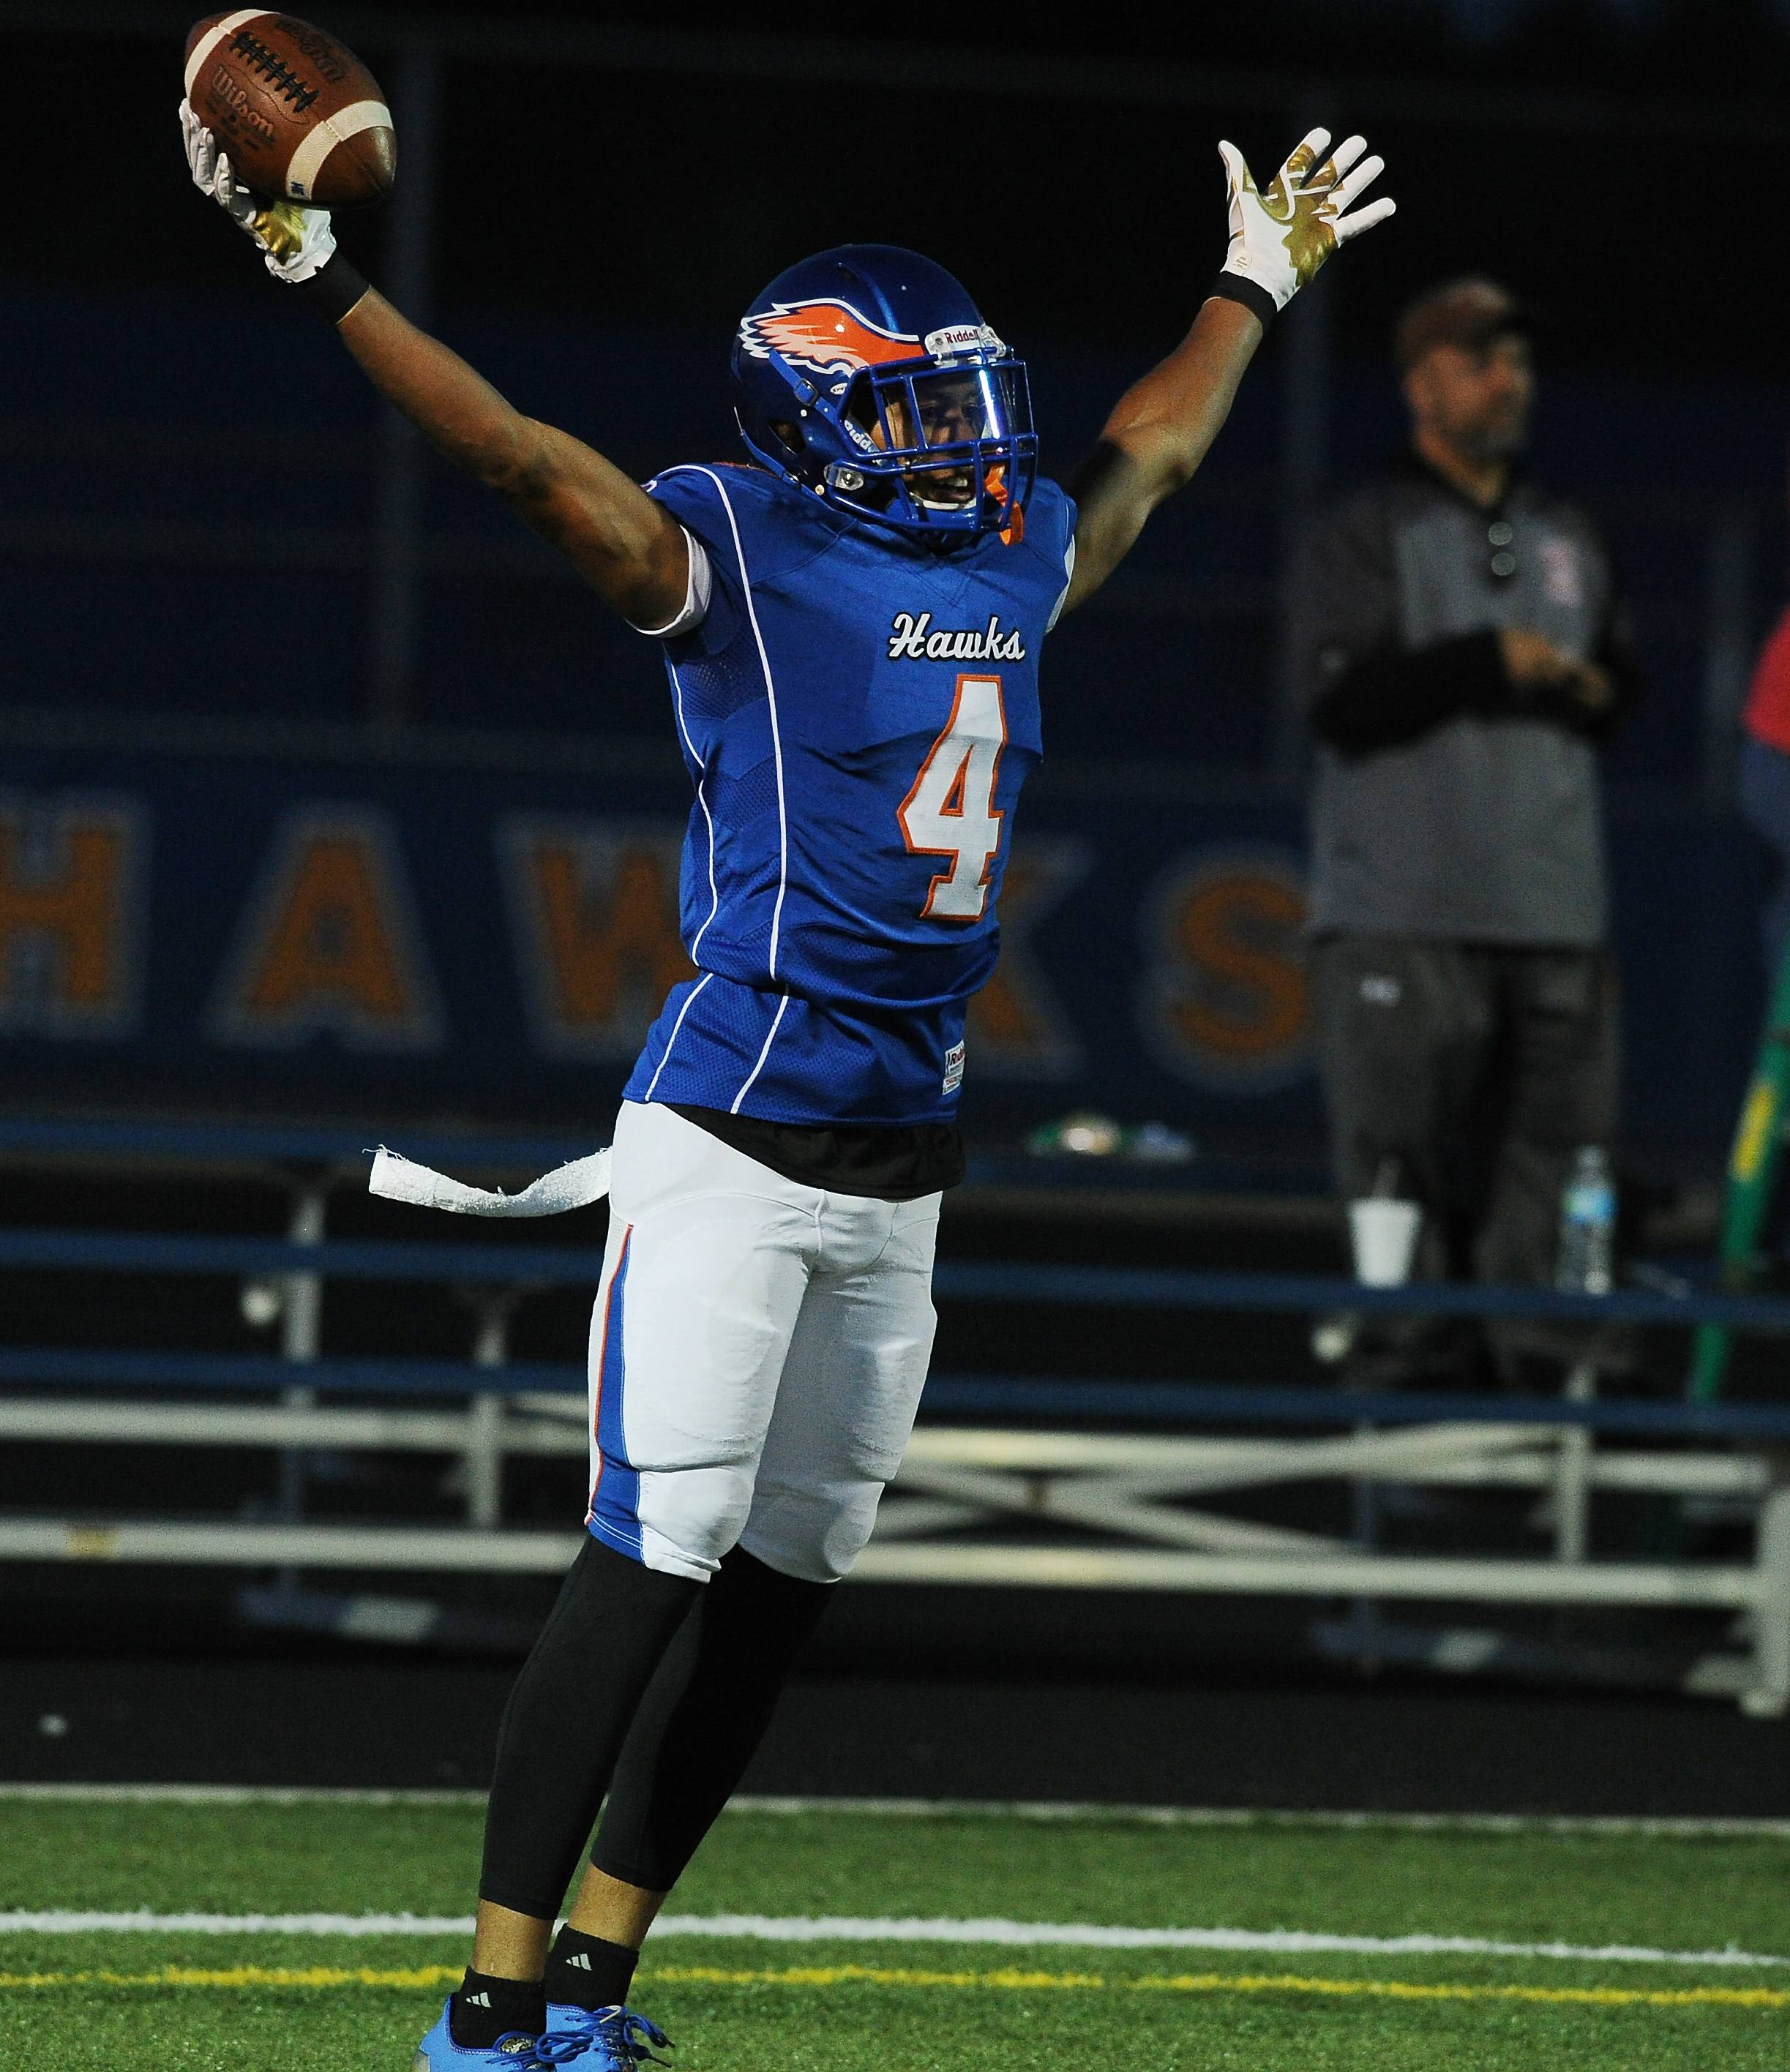 Hoffman Estates and receiver Jayvon Blissett will play a Class 6A quarterfinal game at Belvidere North Saturday.